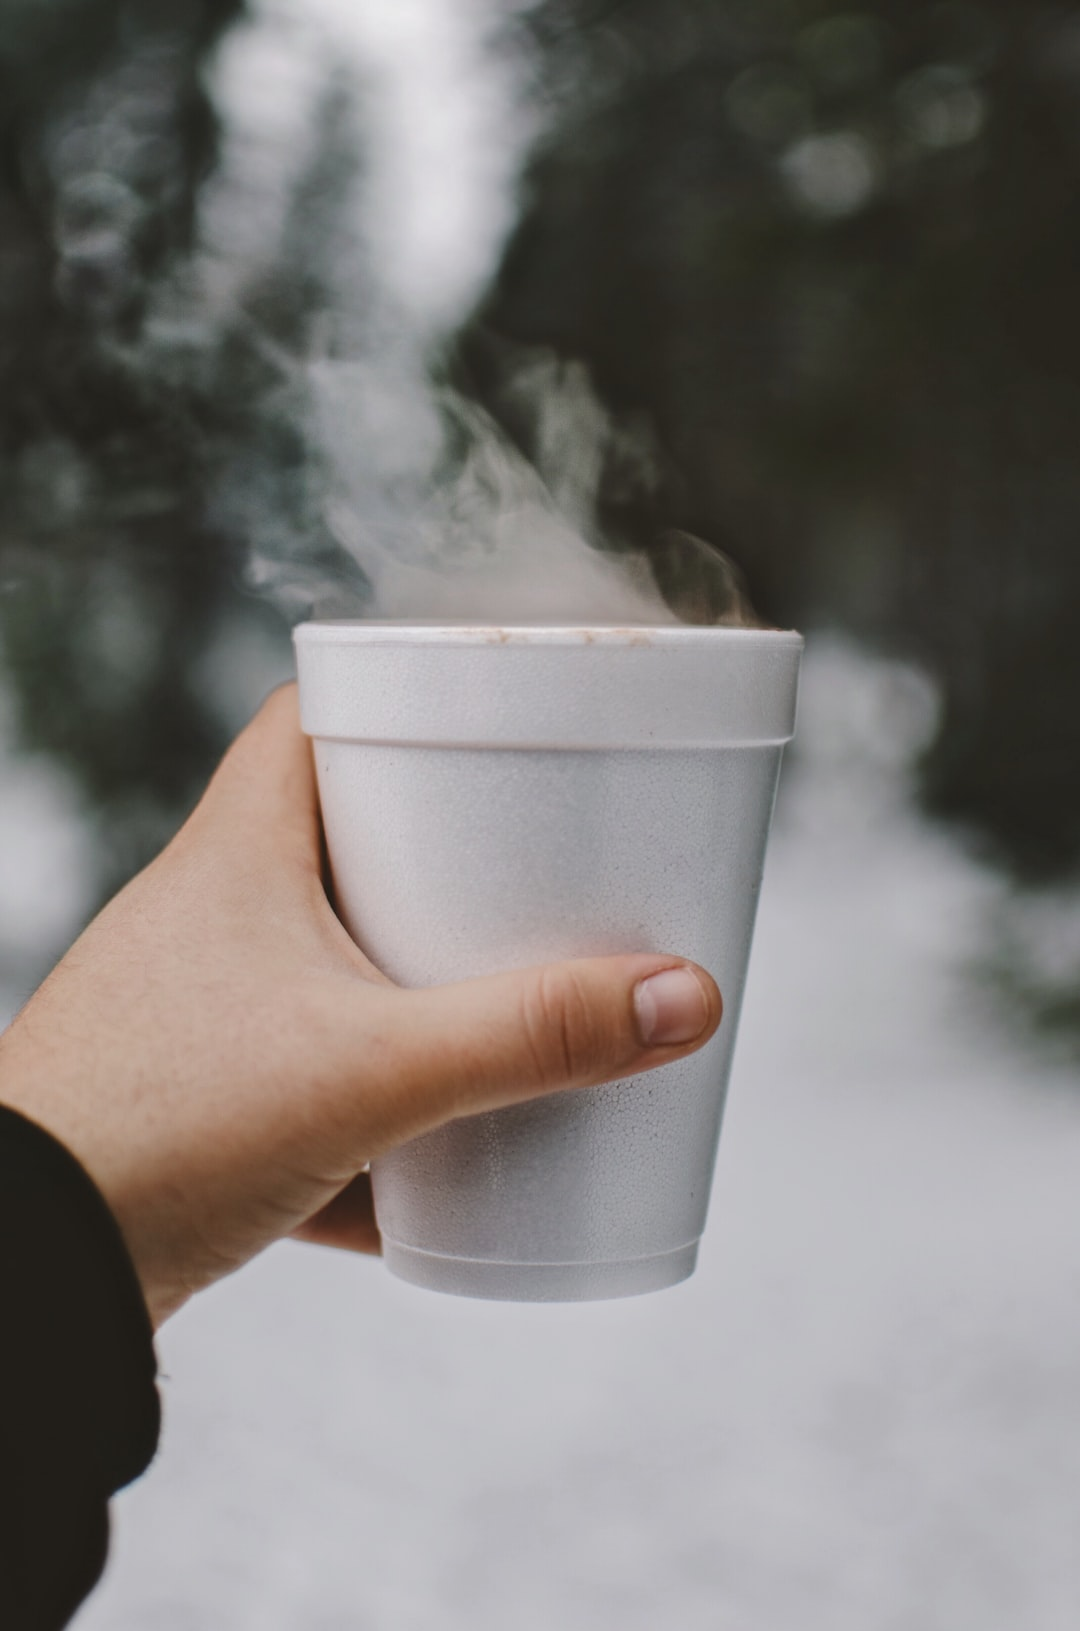 This photo is special, it is a beautiful memory captured in time. My friends and i took a trip to the mountains and made hot coco using the snow from the ground. what a wonderful day it was!